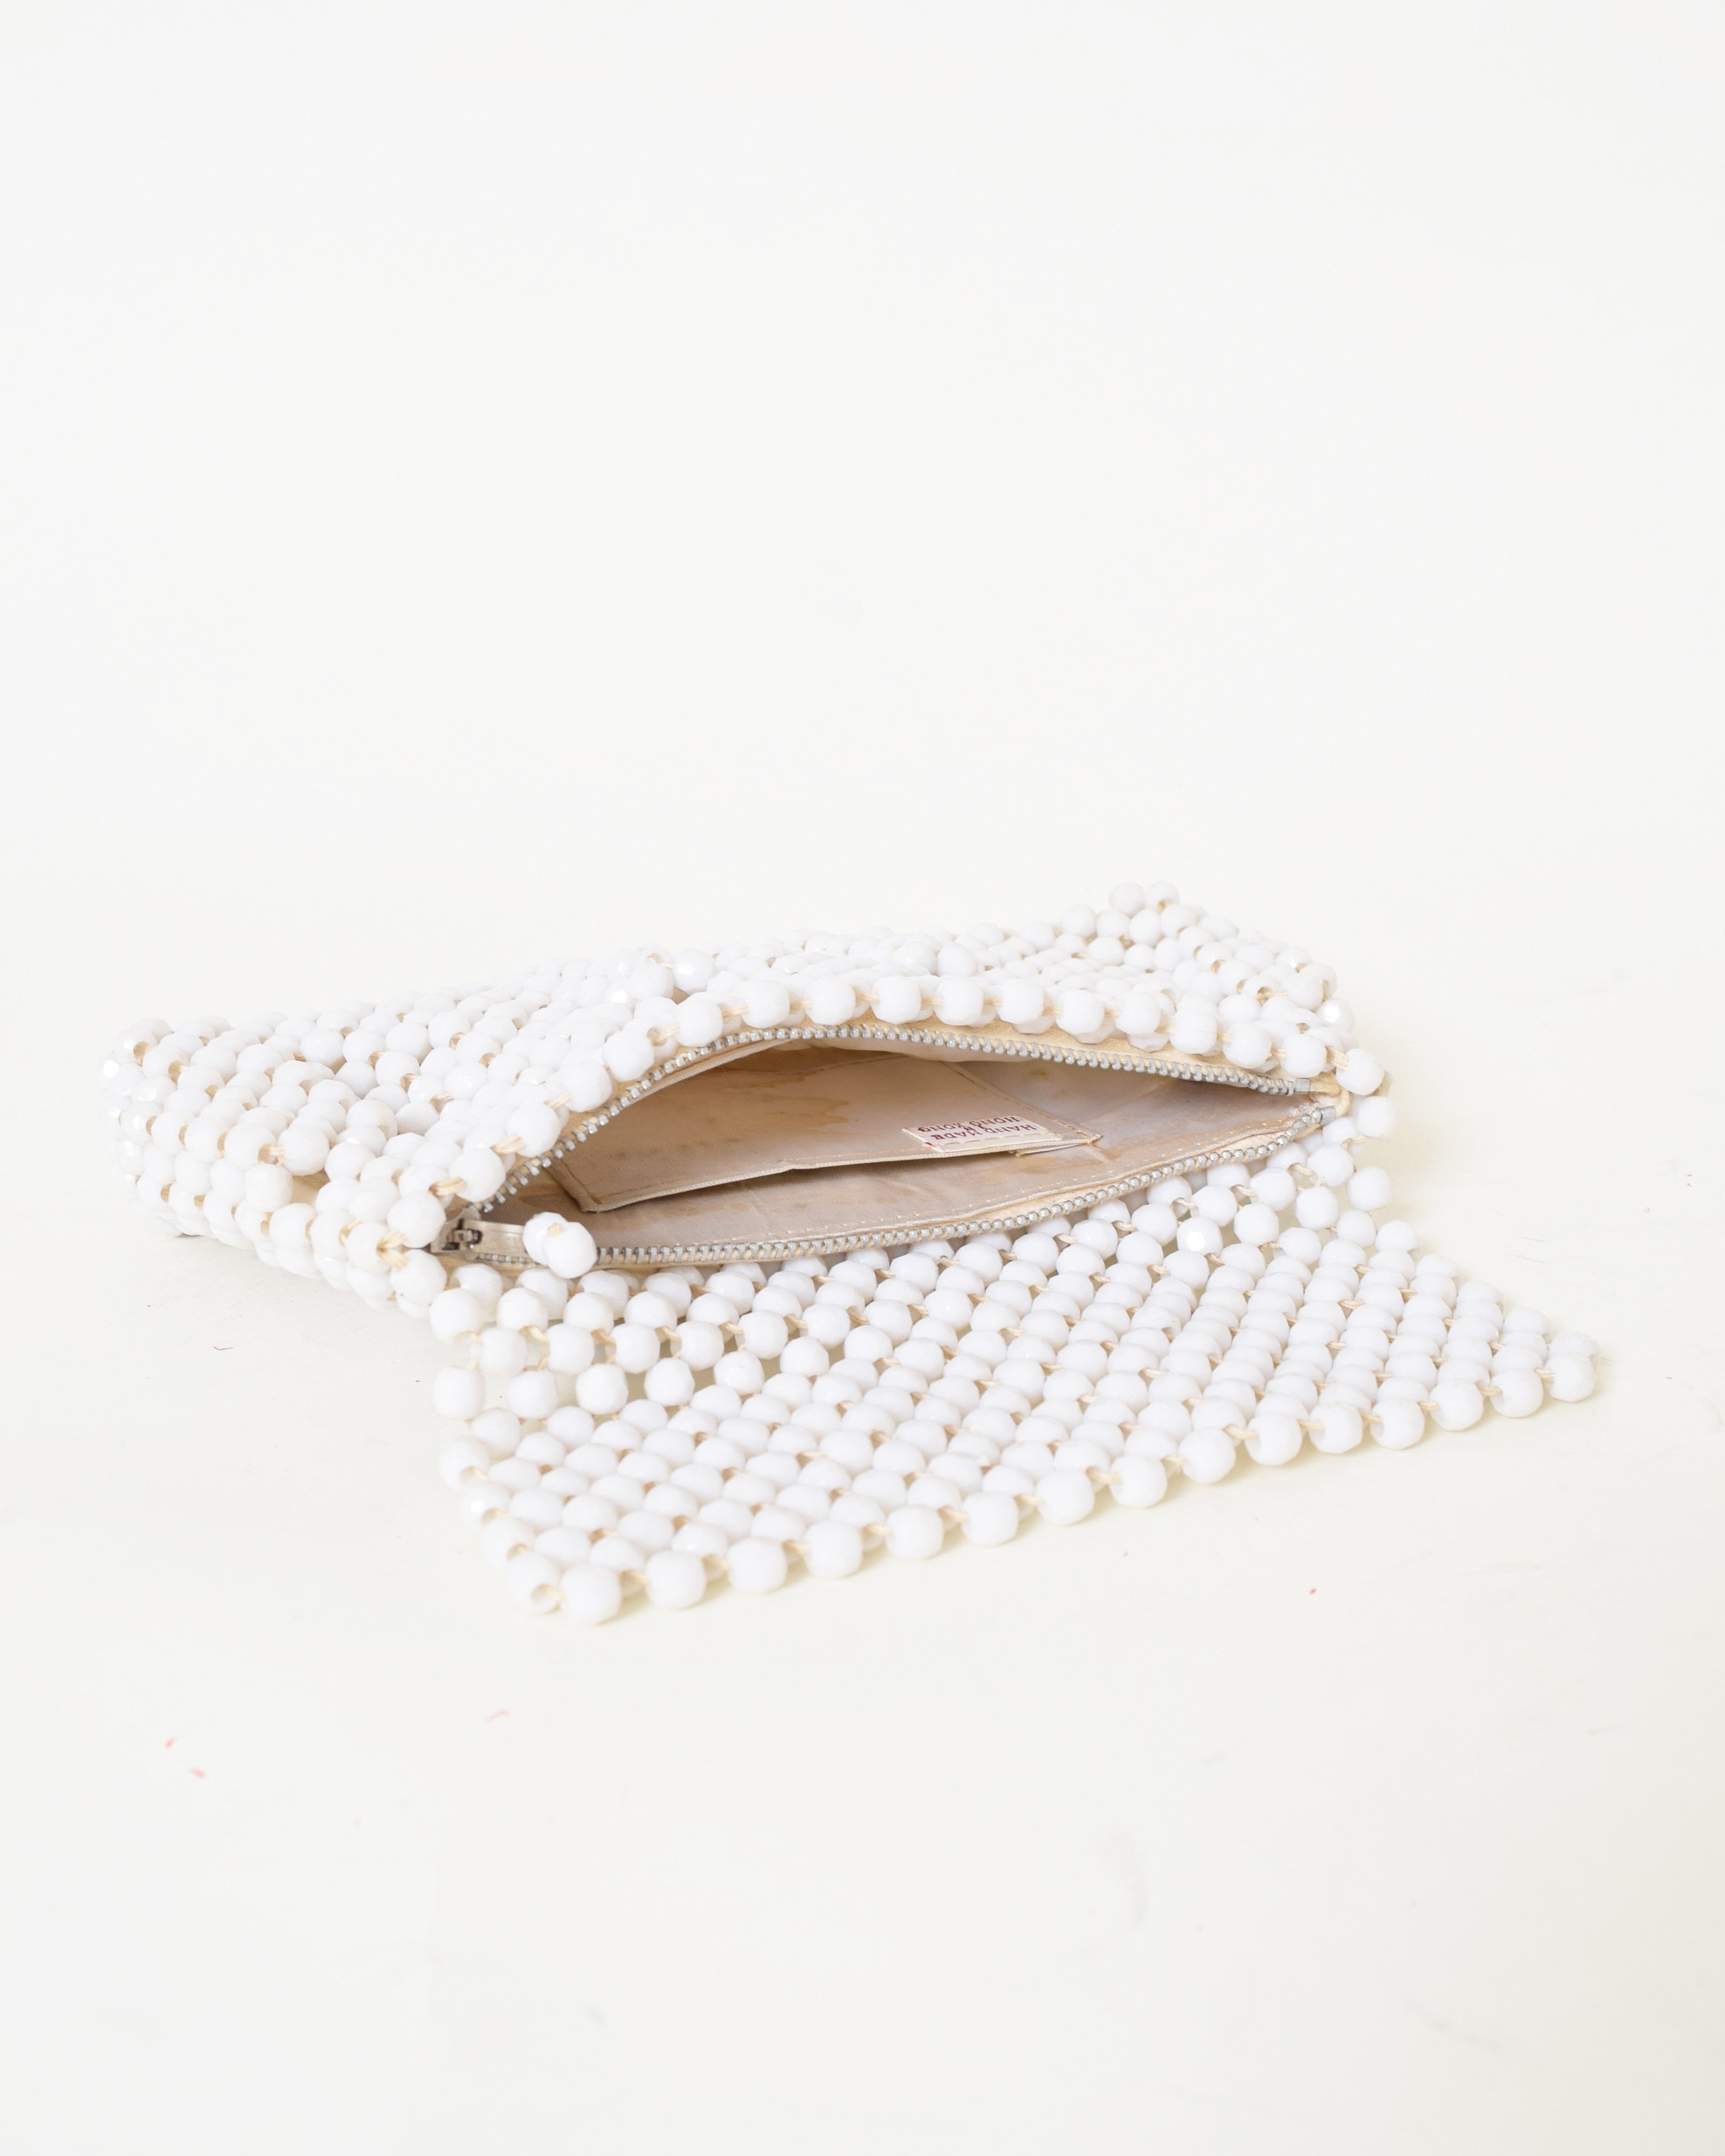 Vintage 1960s White Beaded Clutch